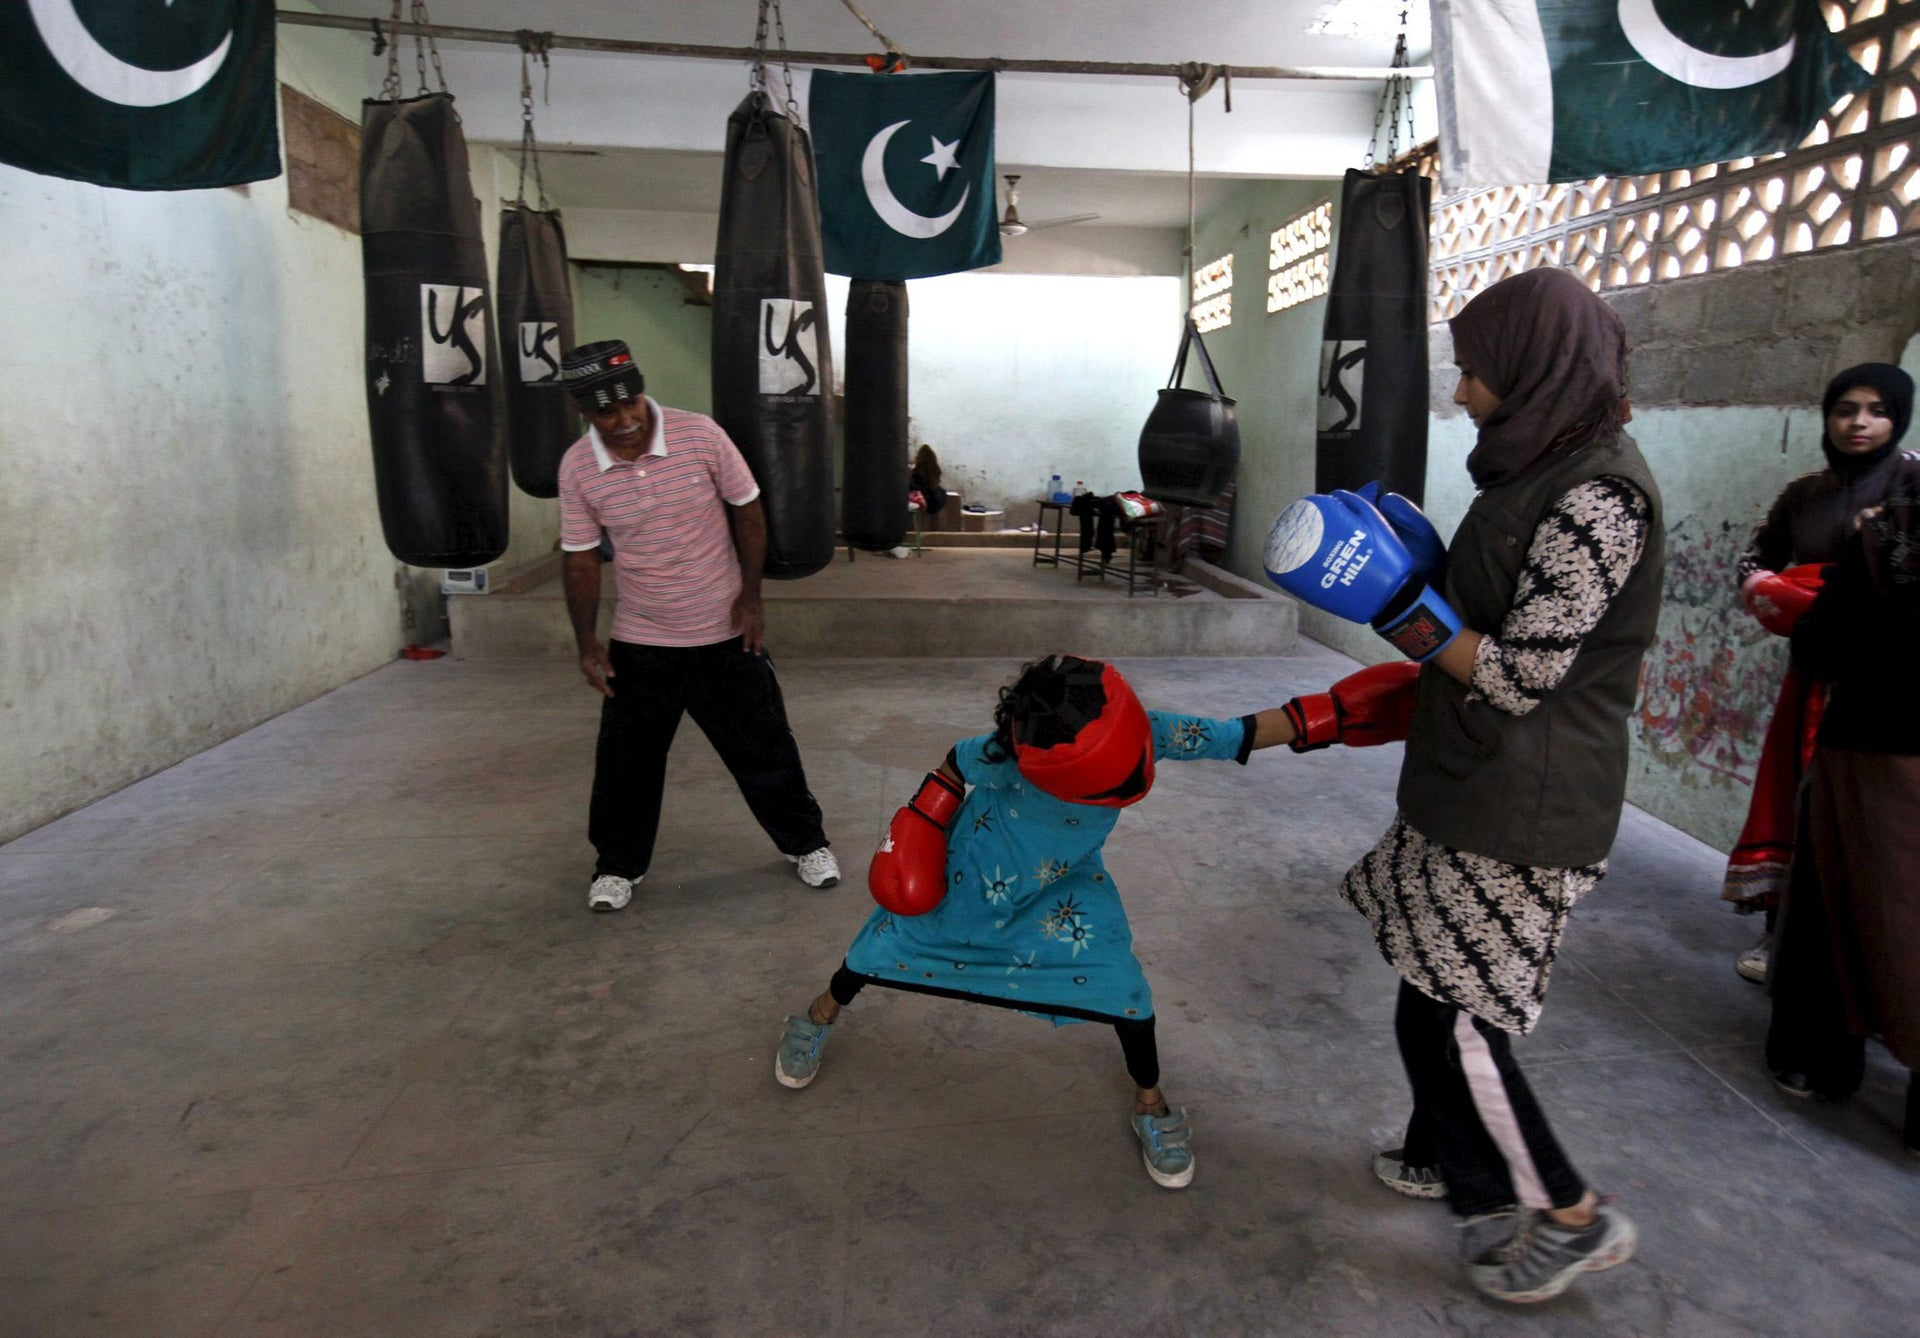 Barisha, 9, punches Misbah in a practice session at the first women's boxing camp in Karachi, Pakistan on February 20, 2016.